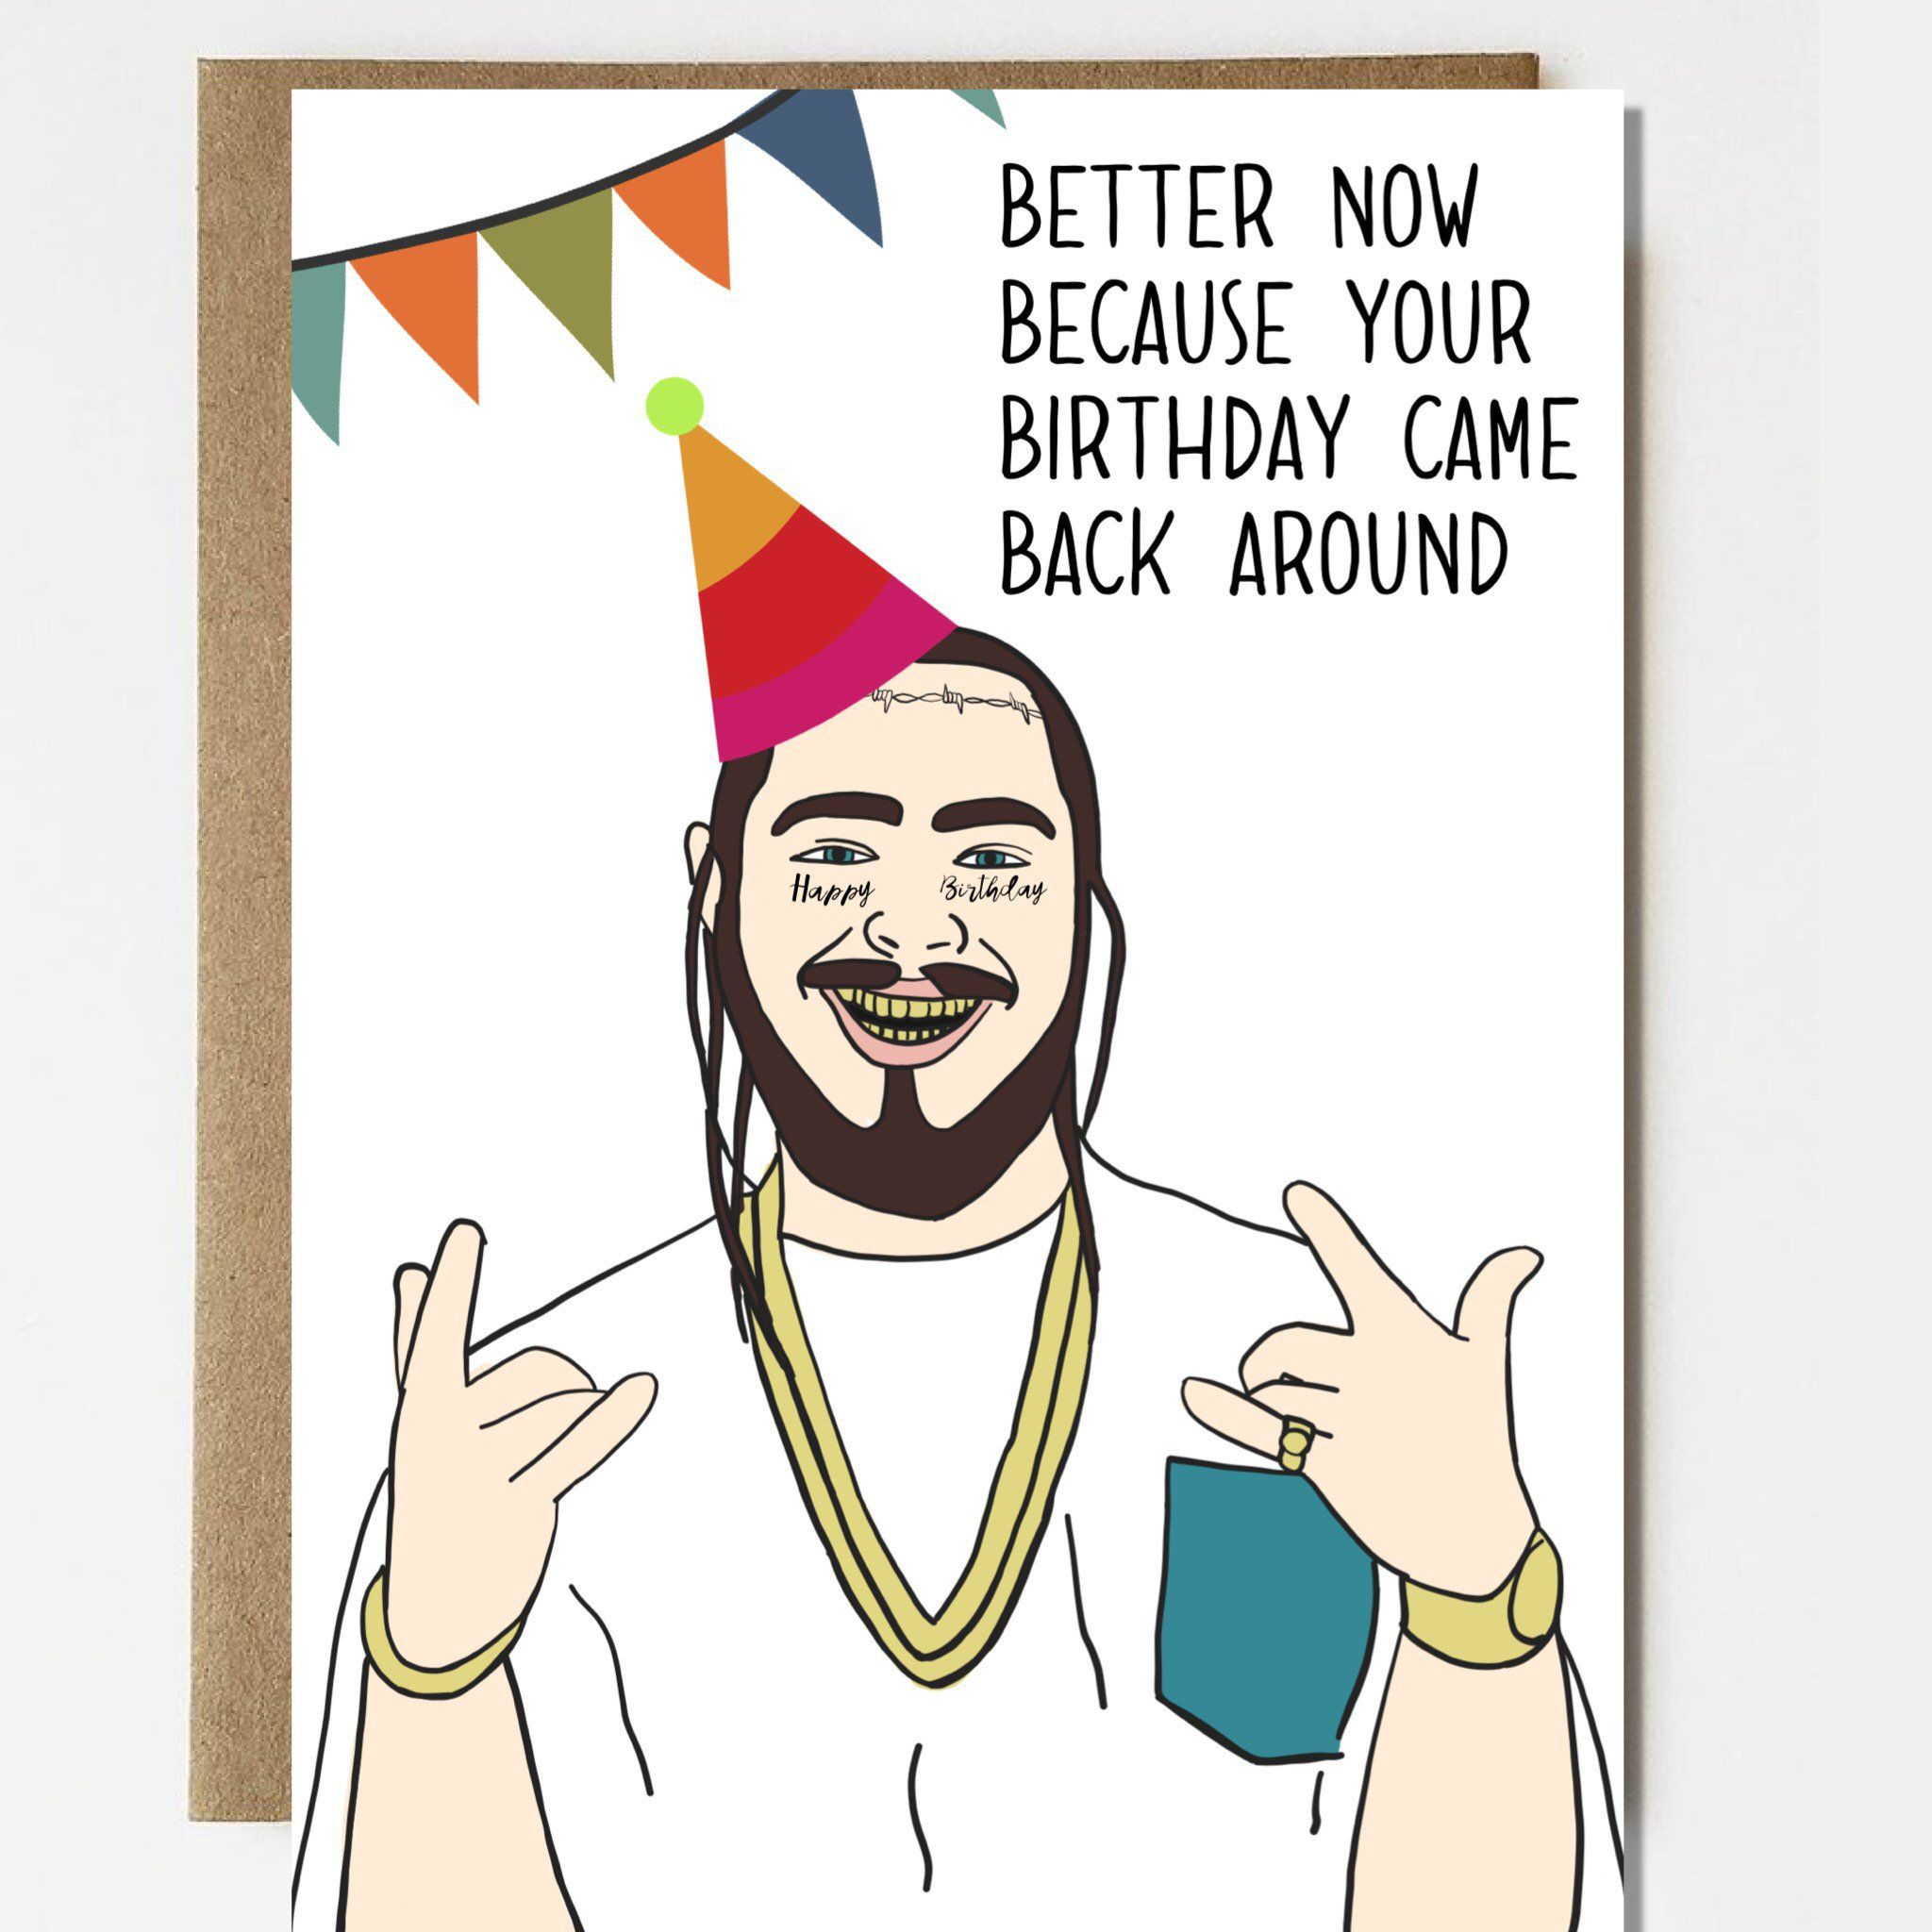 Post Malone Clip Art: Funny Post Malone Inspired Birthday Card